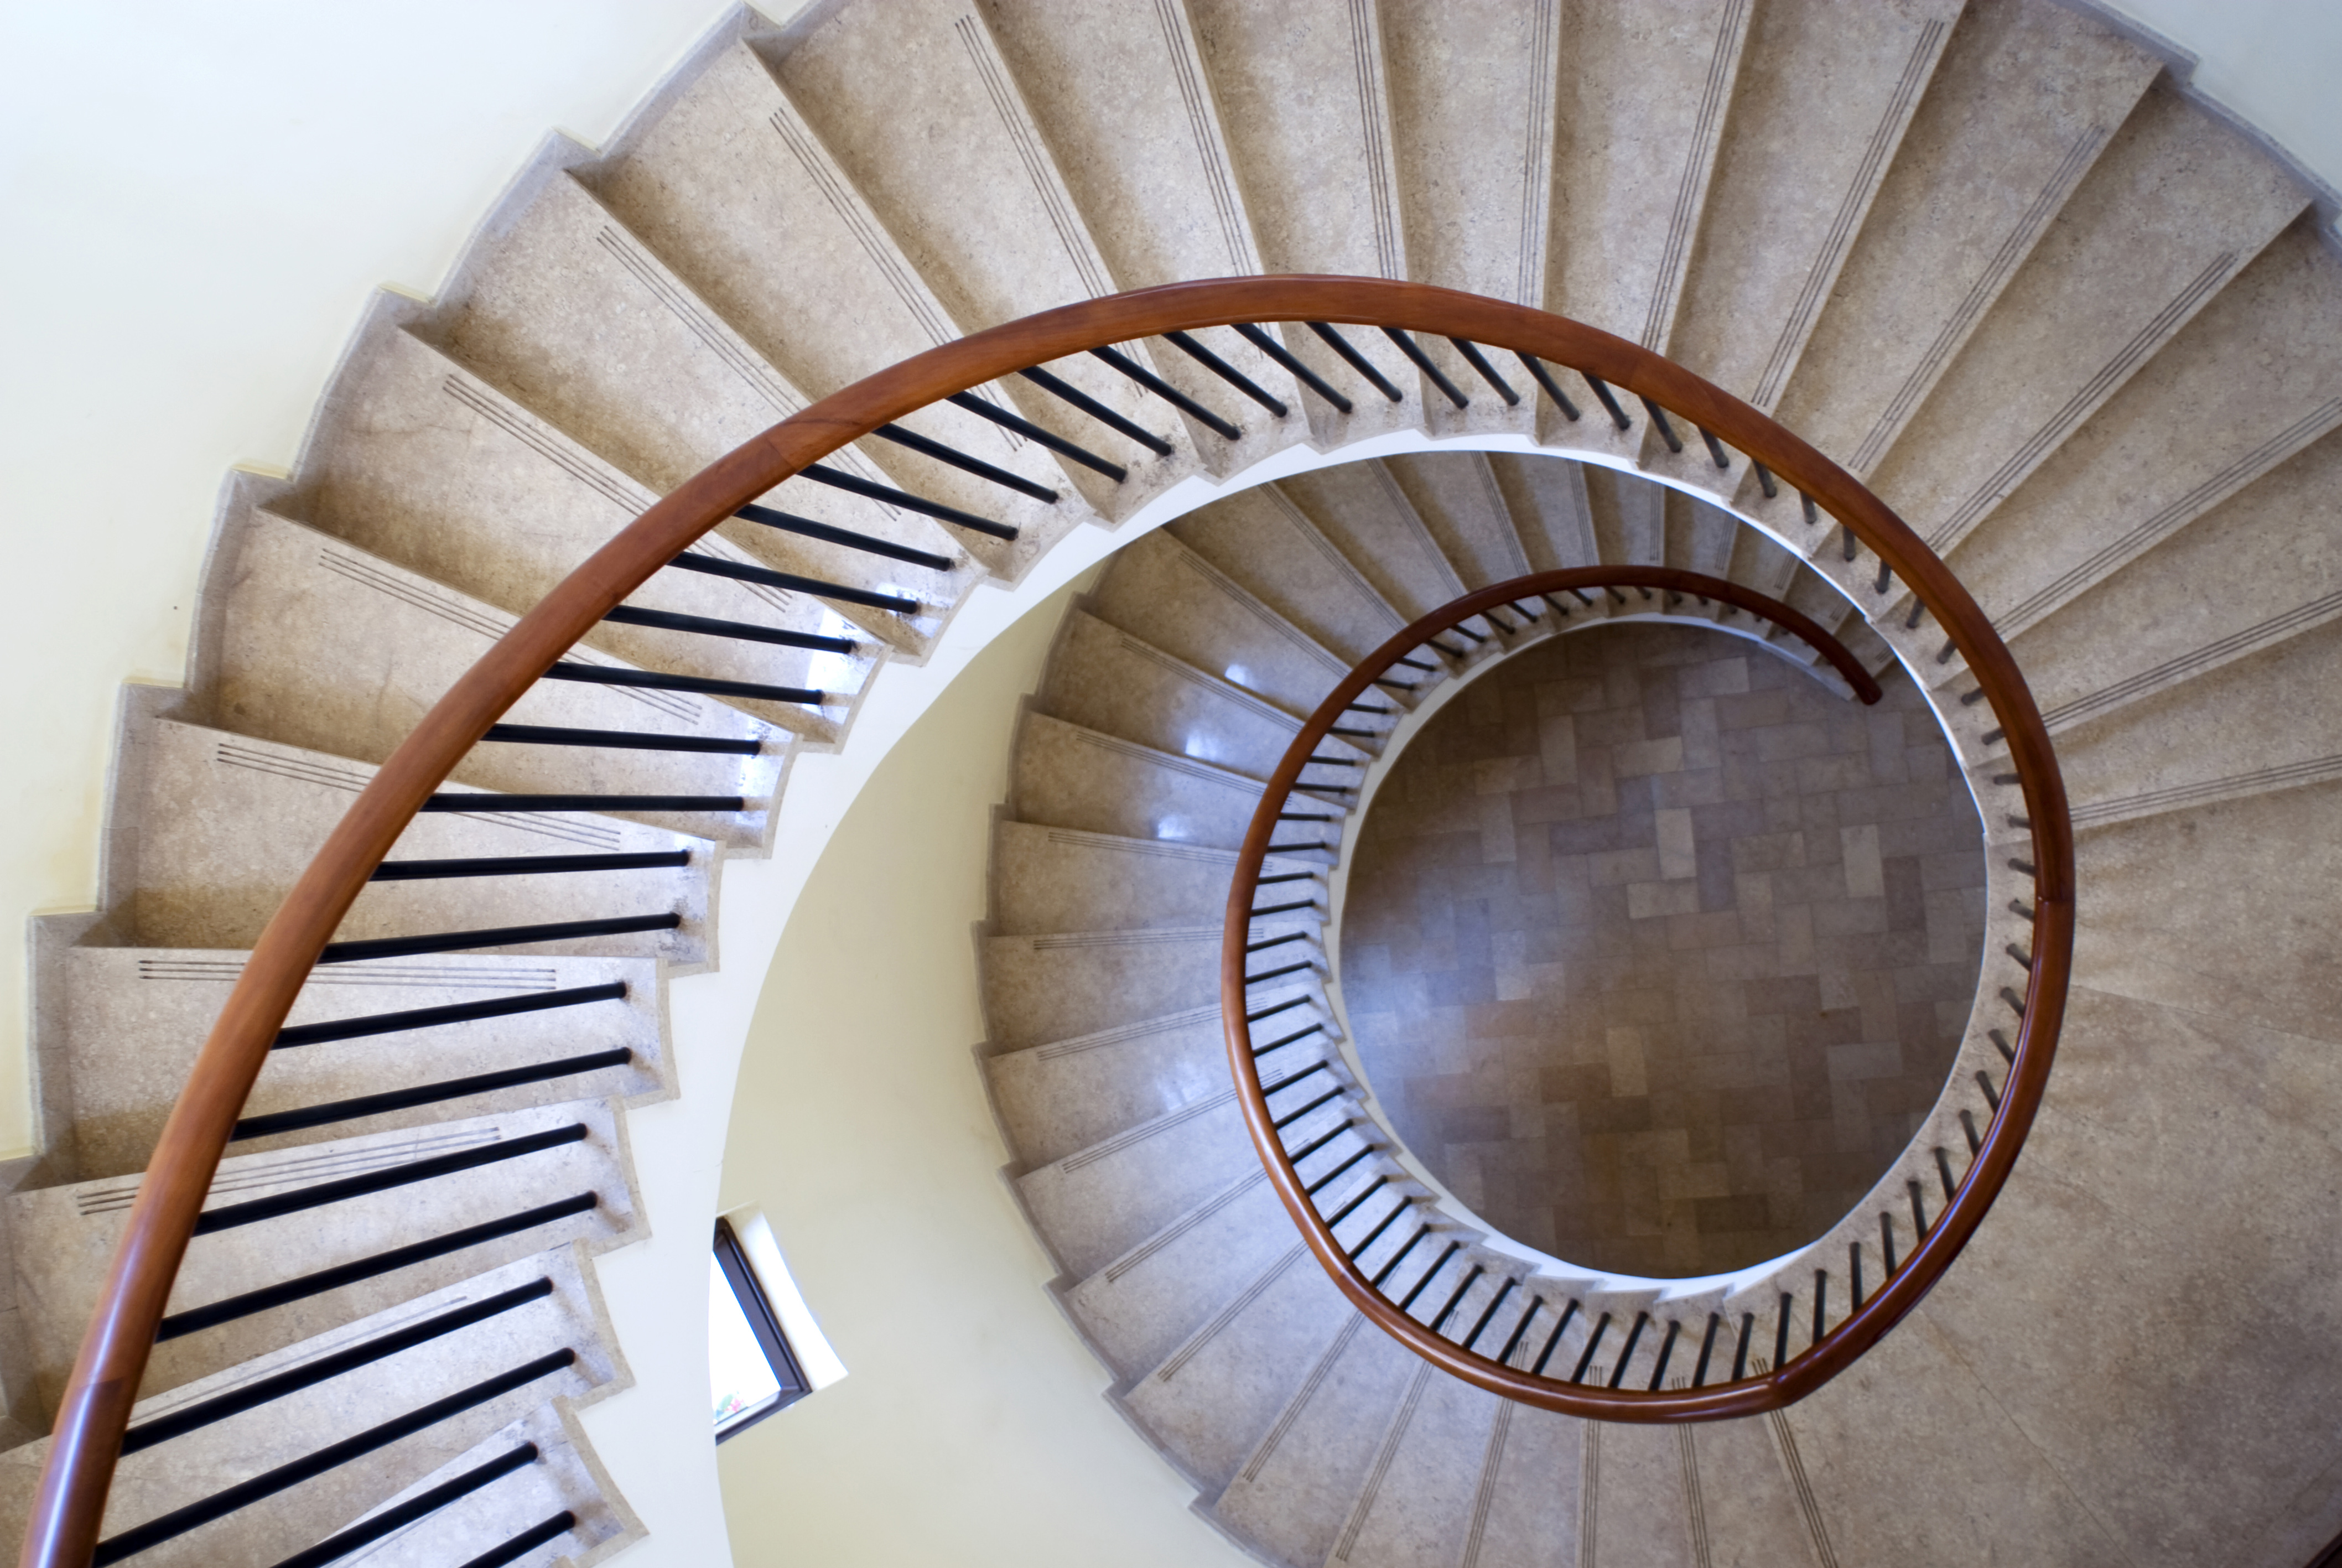 Spiral staircase 55340